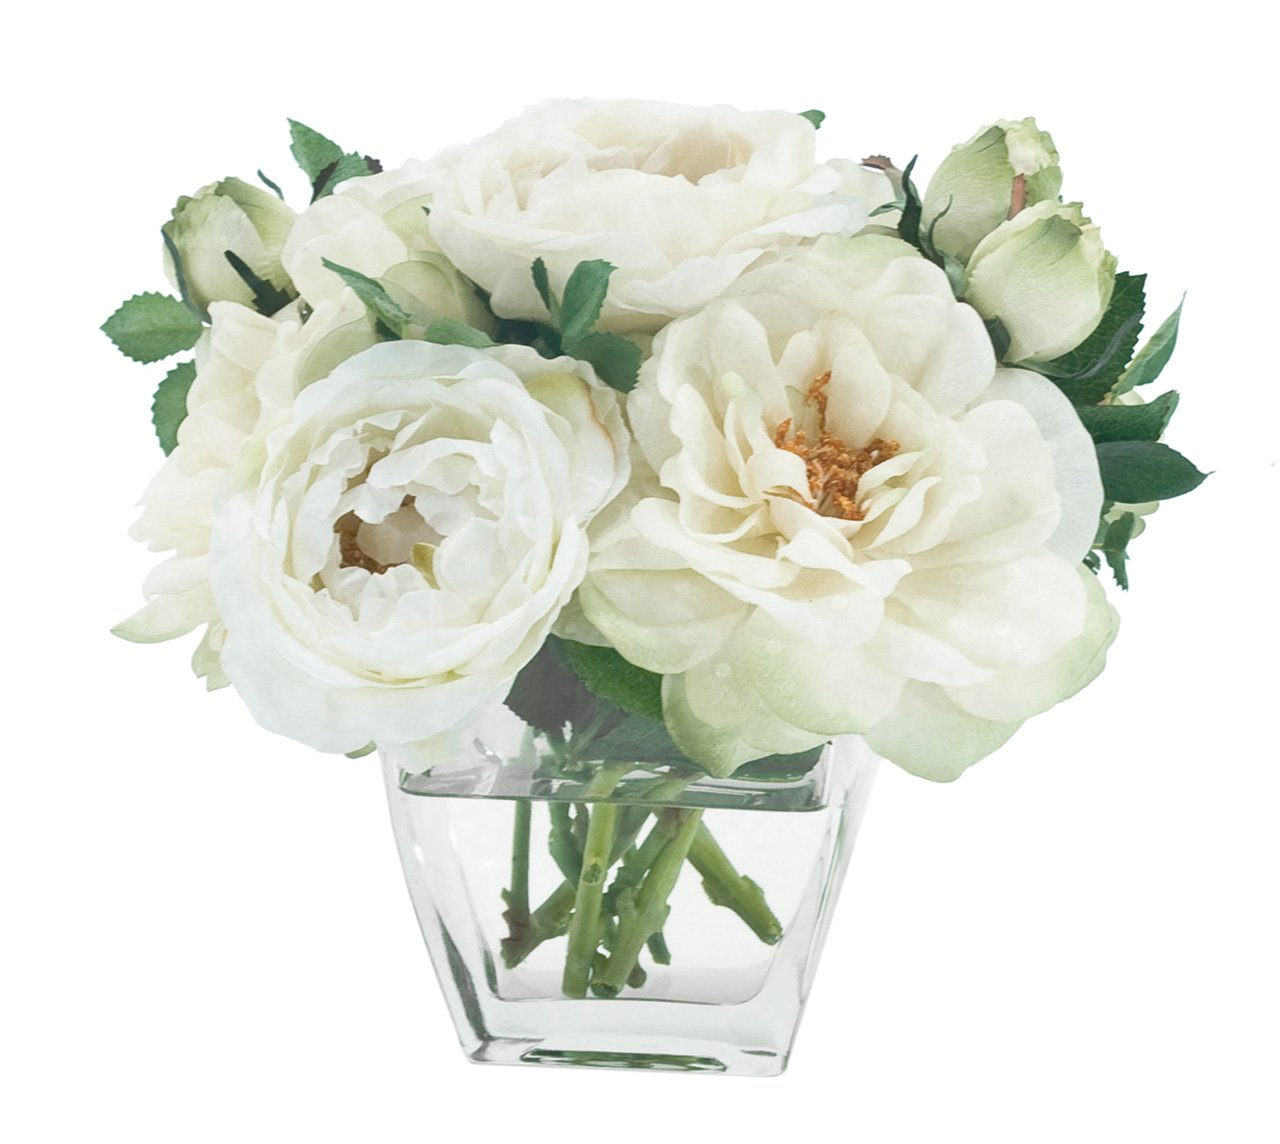 FAB Flowers Cream White Rose Bouquet, Great Bridesmaids or You Have Been a Good Girl Gift!!, 9 Inches Length x 8 Inches High